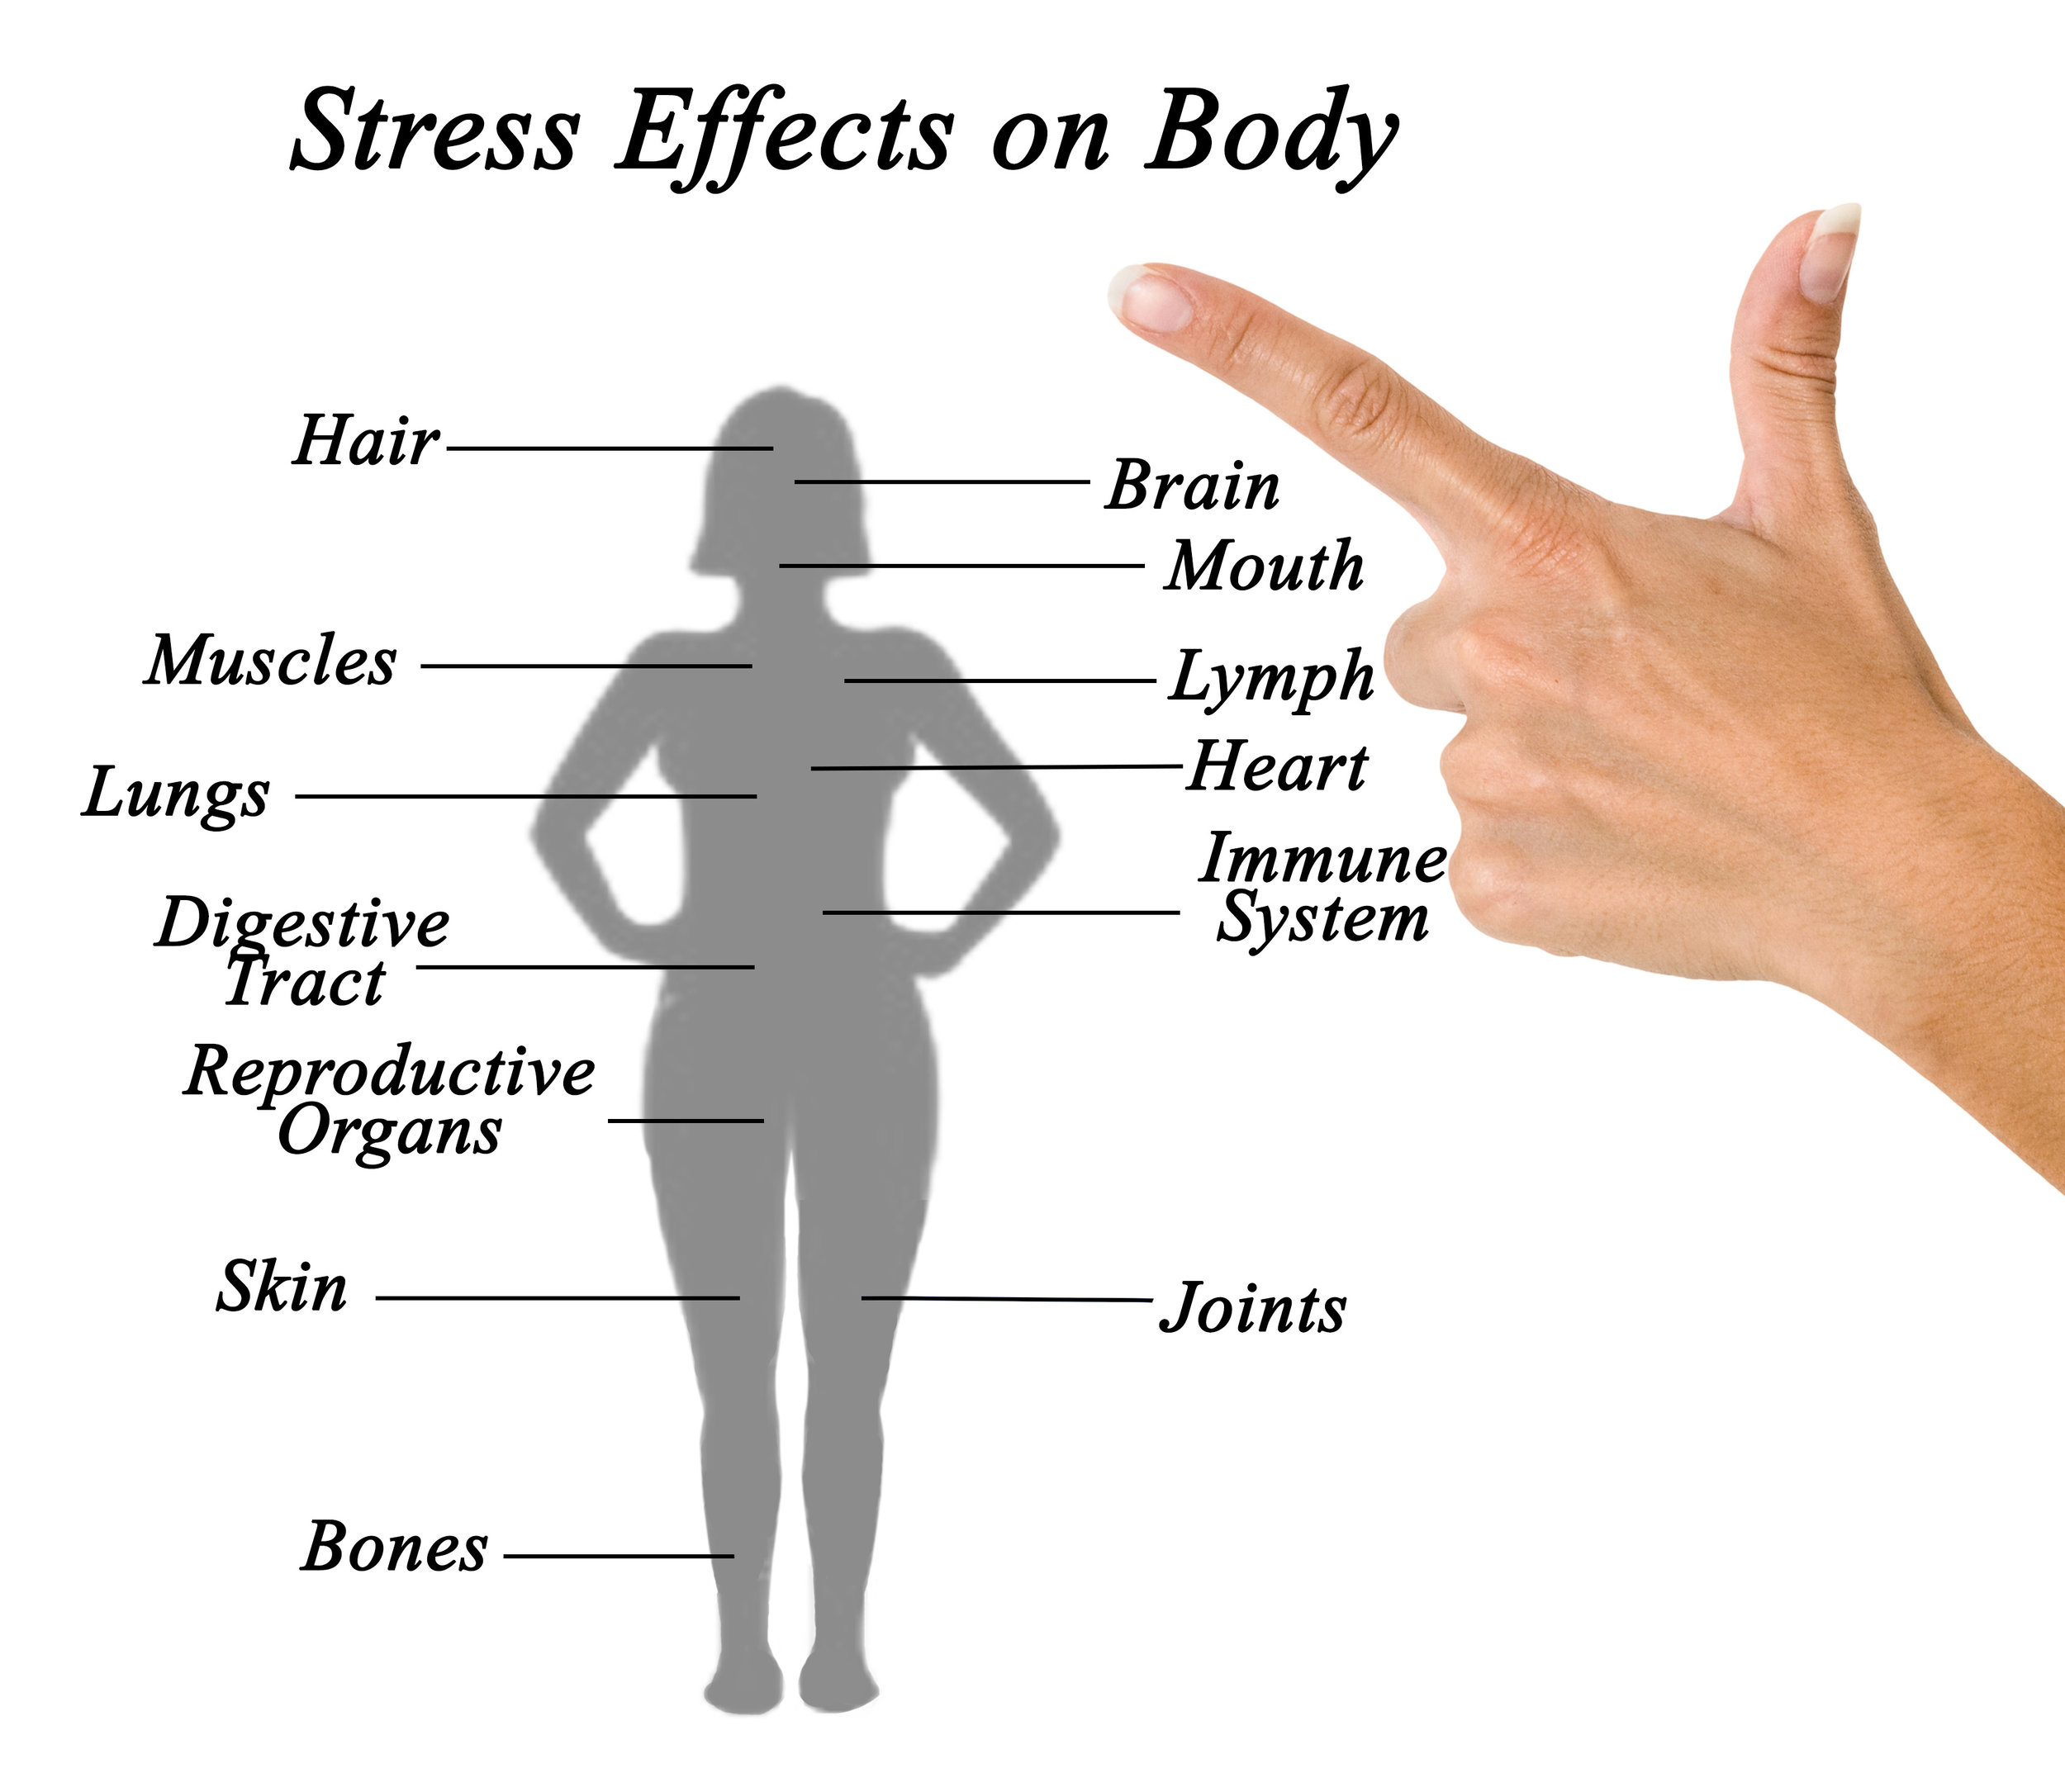 Stress and anxiety in the body